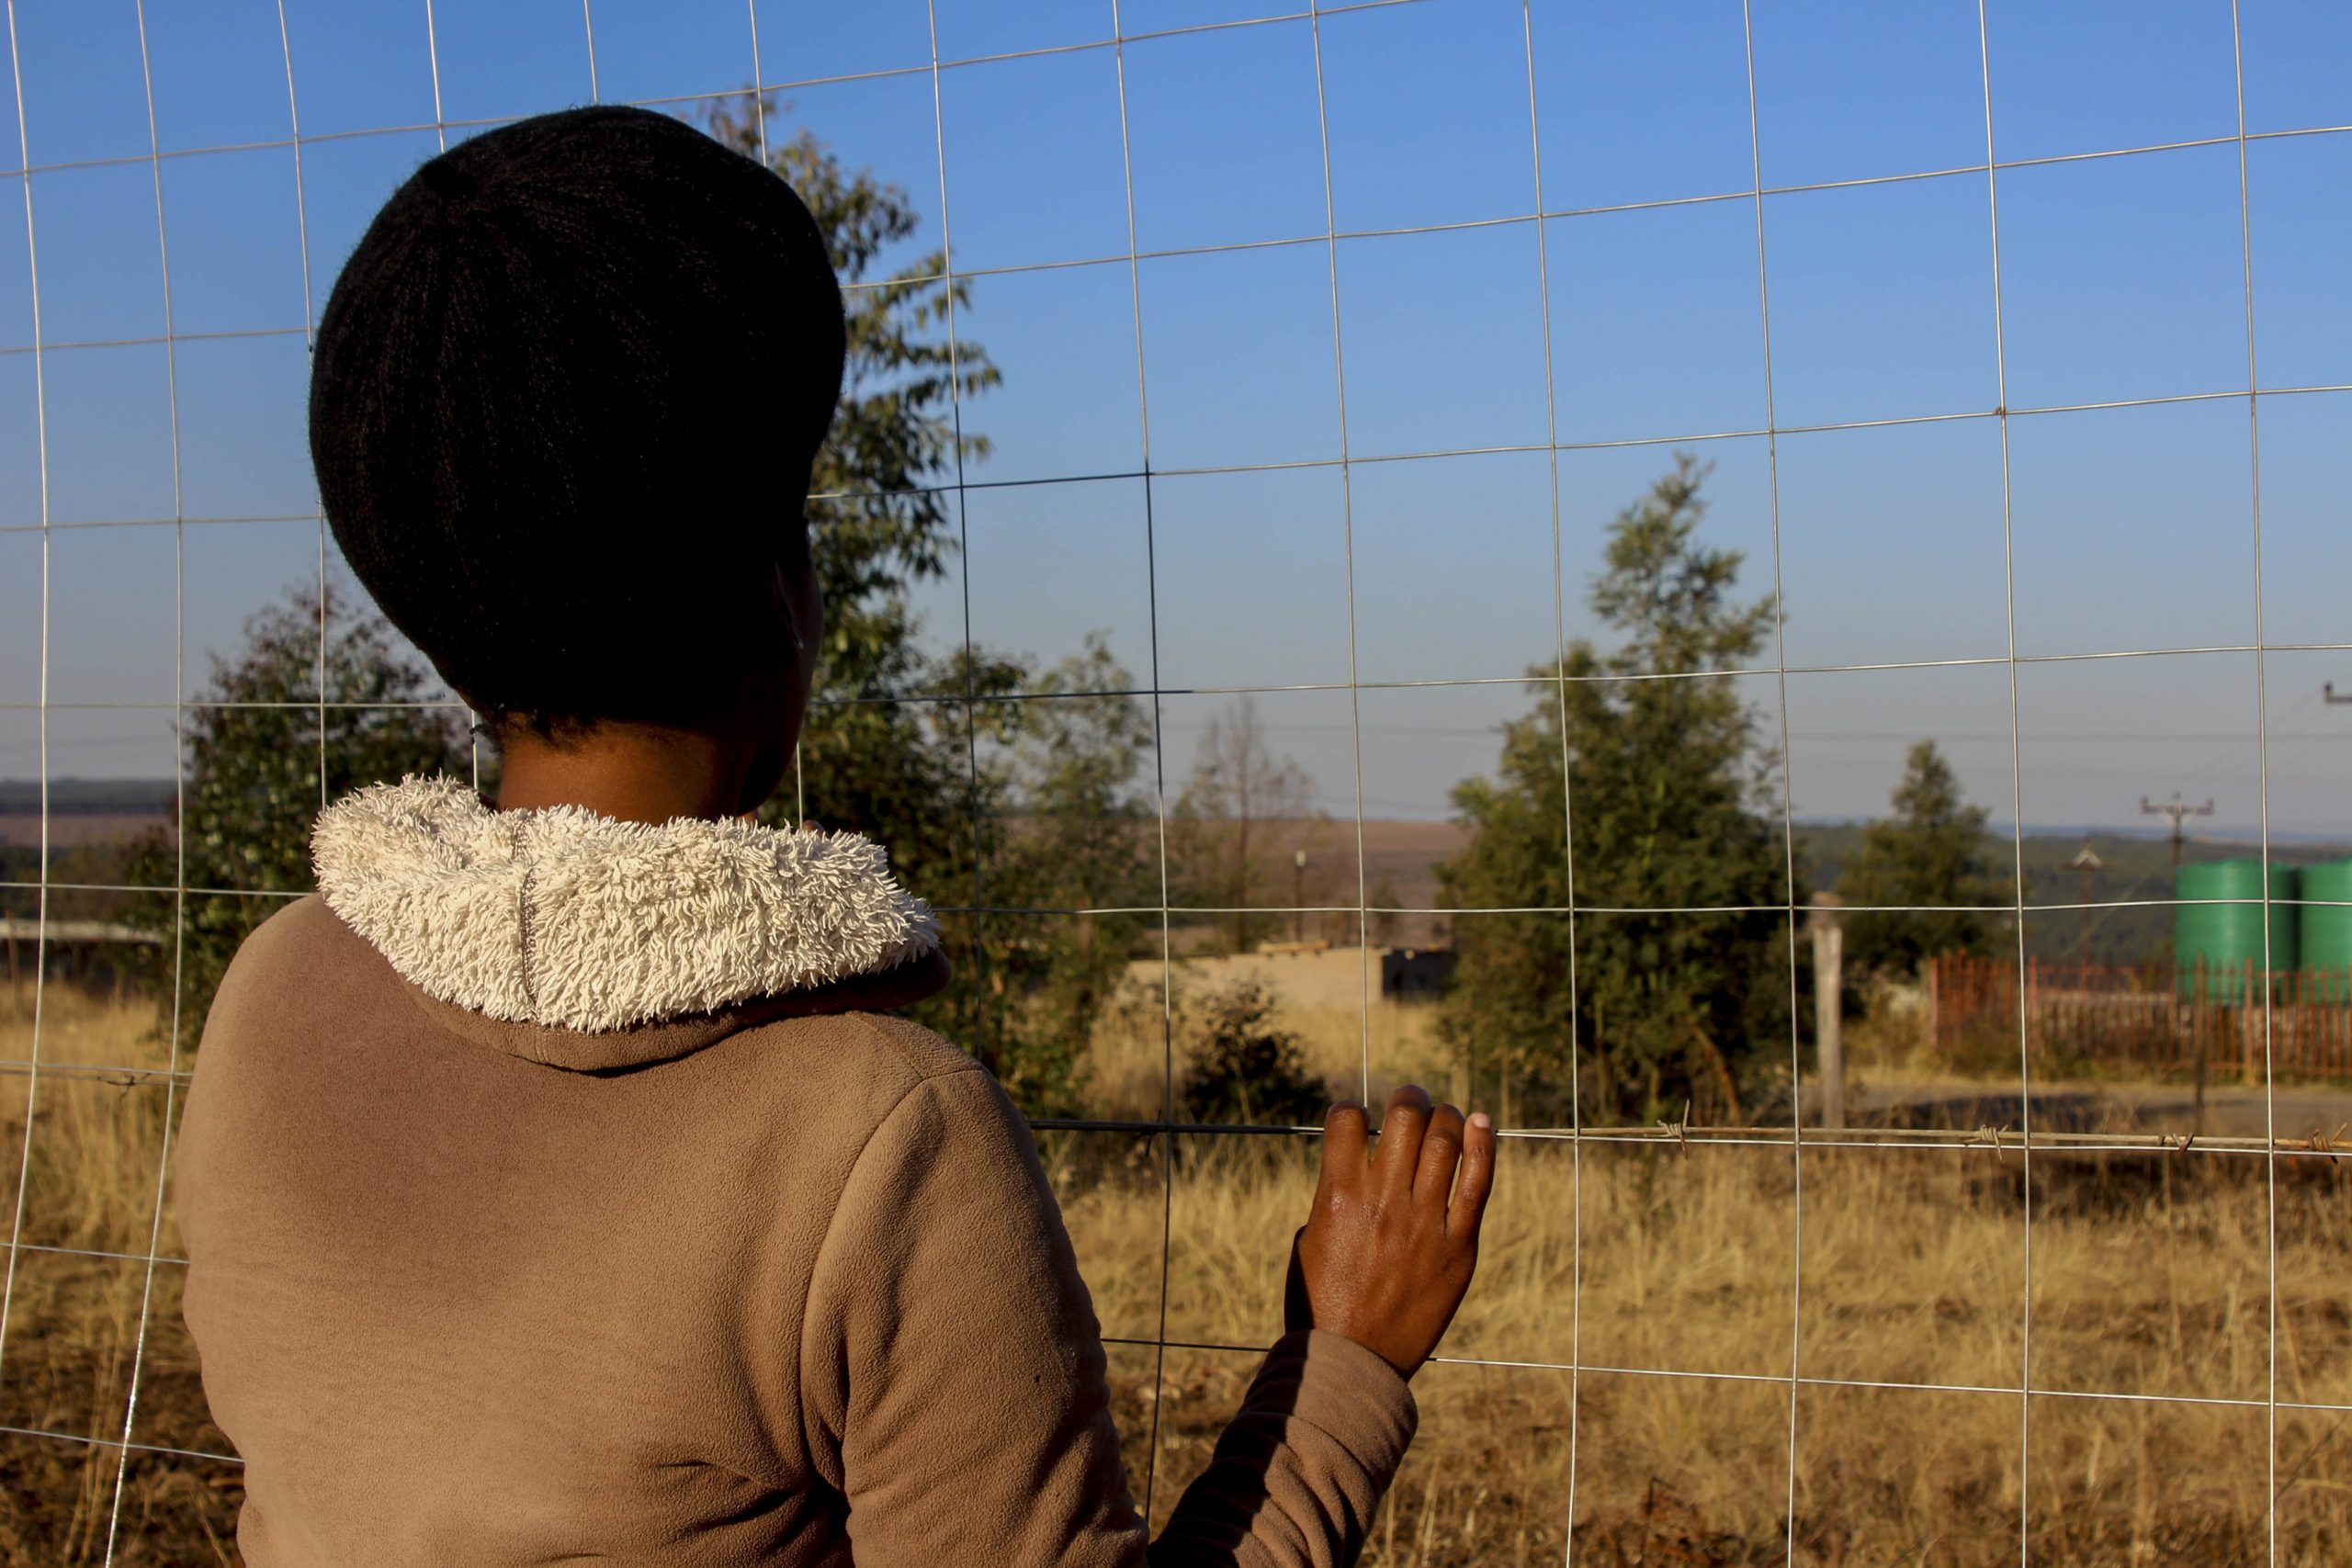 20 June 2020: Zanele Mazibuko (not her real name), 30, recalls how difficult life was during the early stages of the lockdown as police would beat up anyone found on the streets.